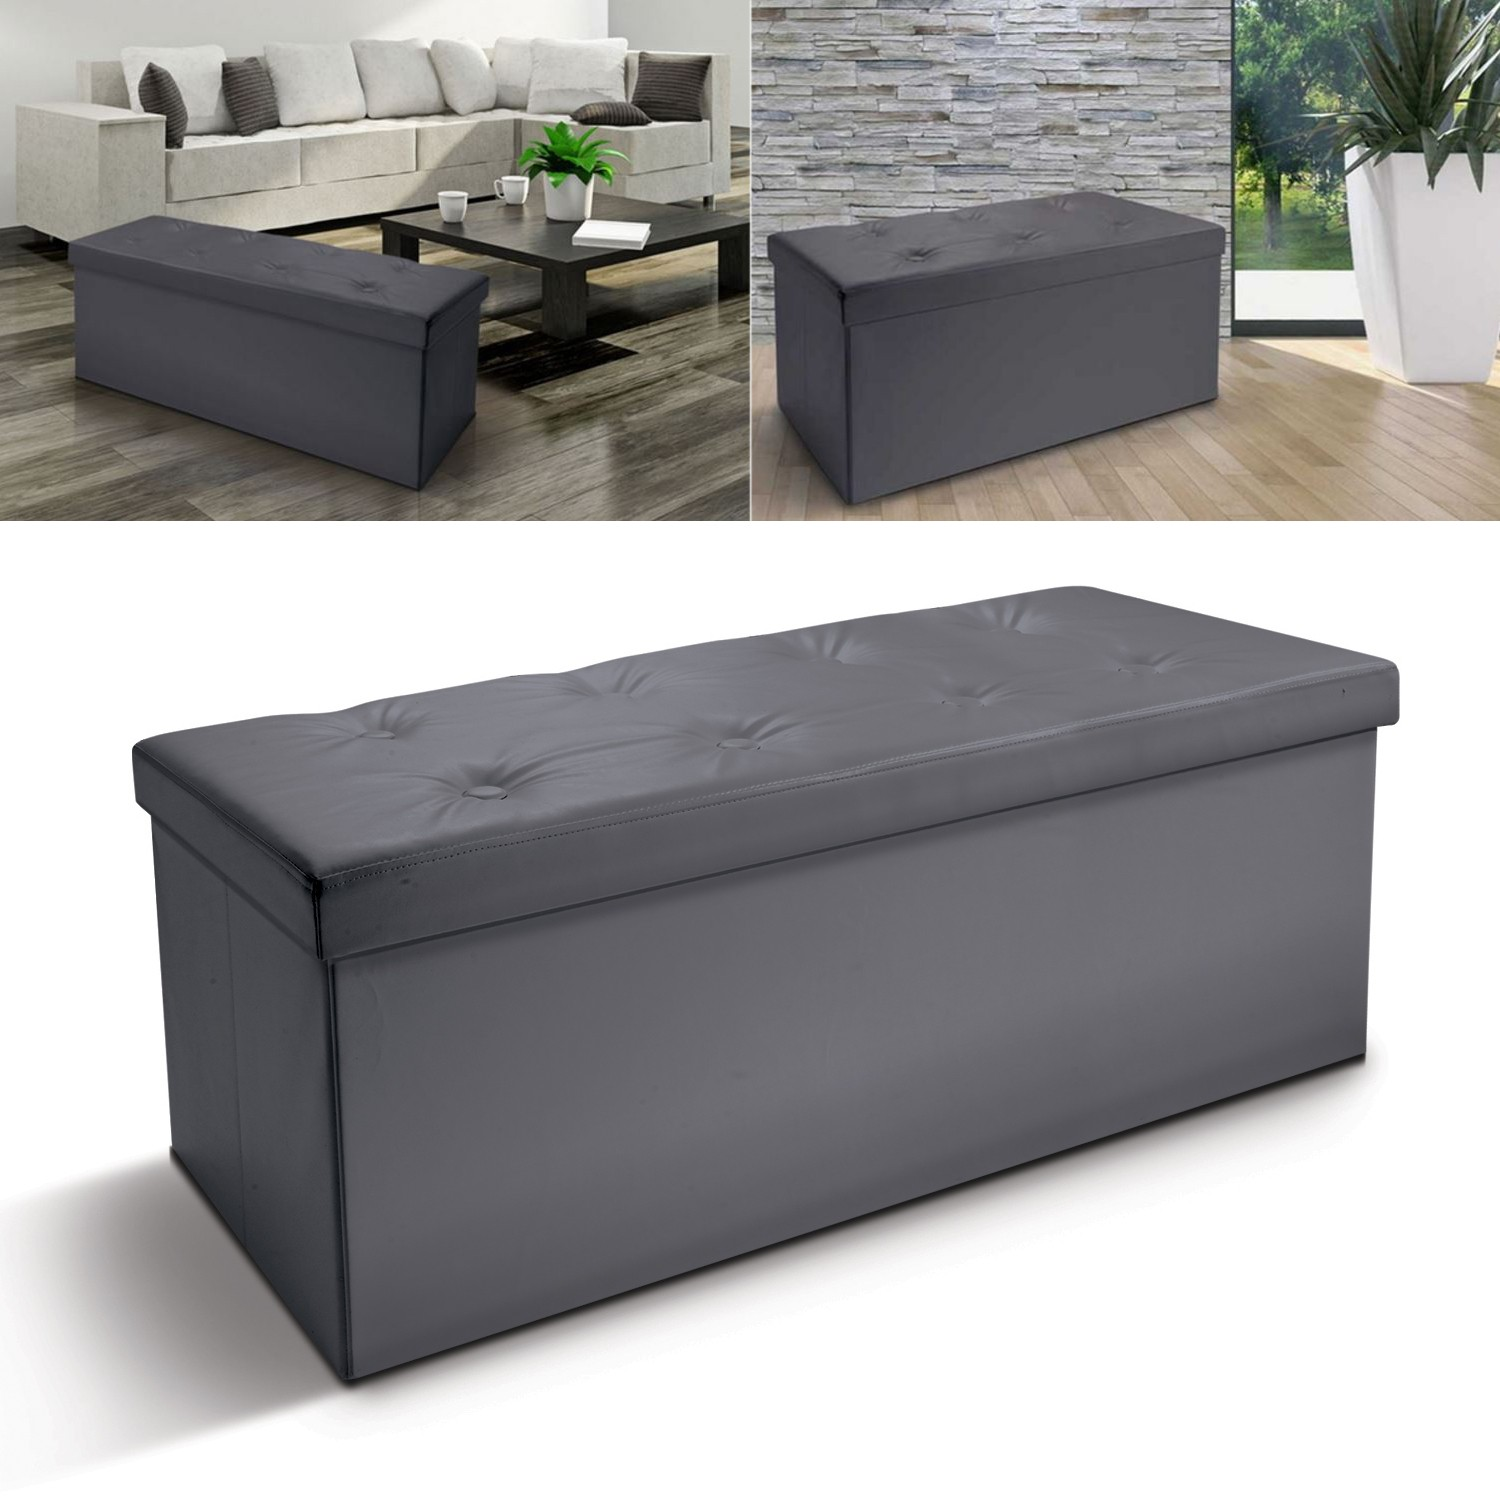 banc coffre rangement pliable gris gm 100x38x38 cm meubles et am n. Black Bedroom Furniture Sets. Home Design Ideas